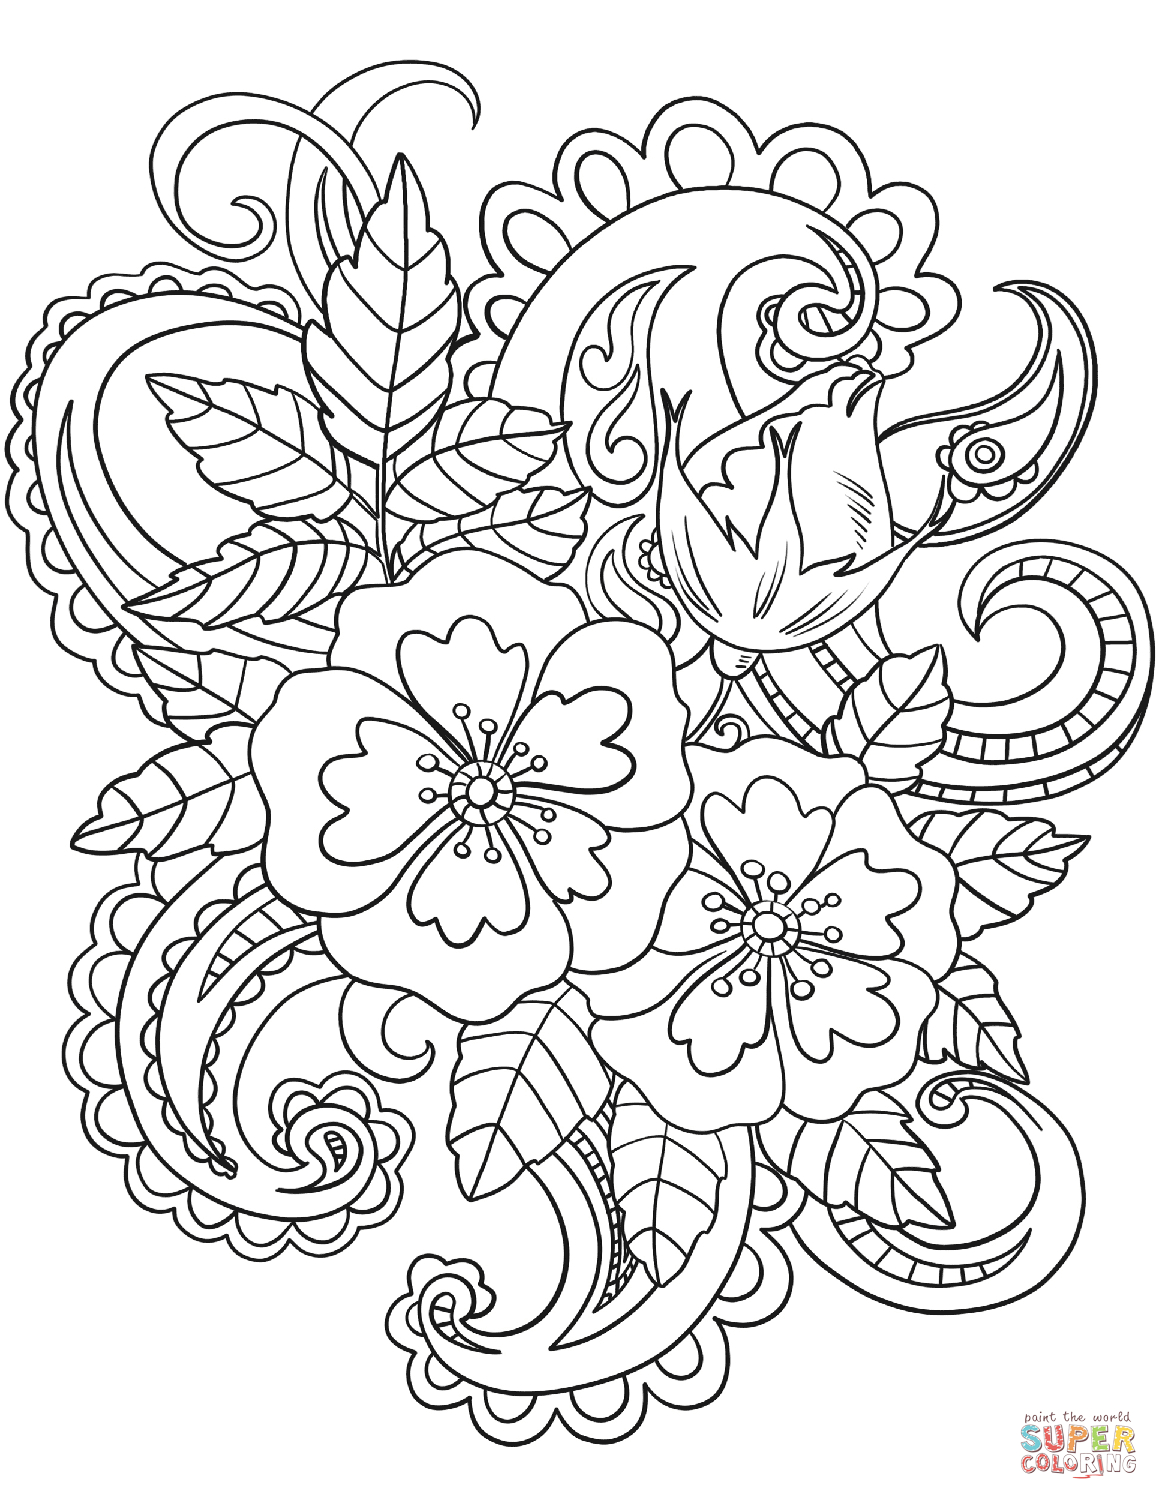 - 25+ Excellent Picture Of Paisley Coloring Pages - Birijus.com